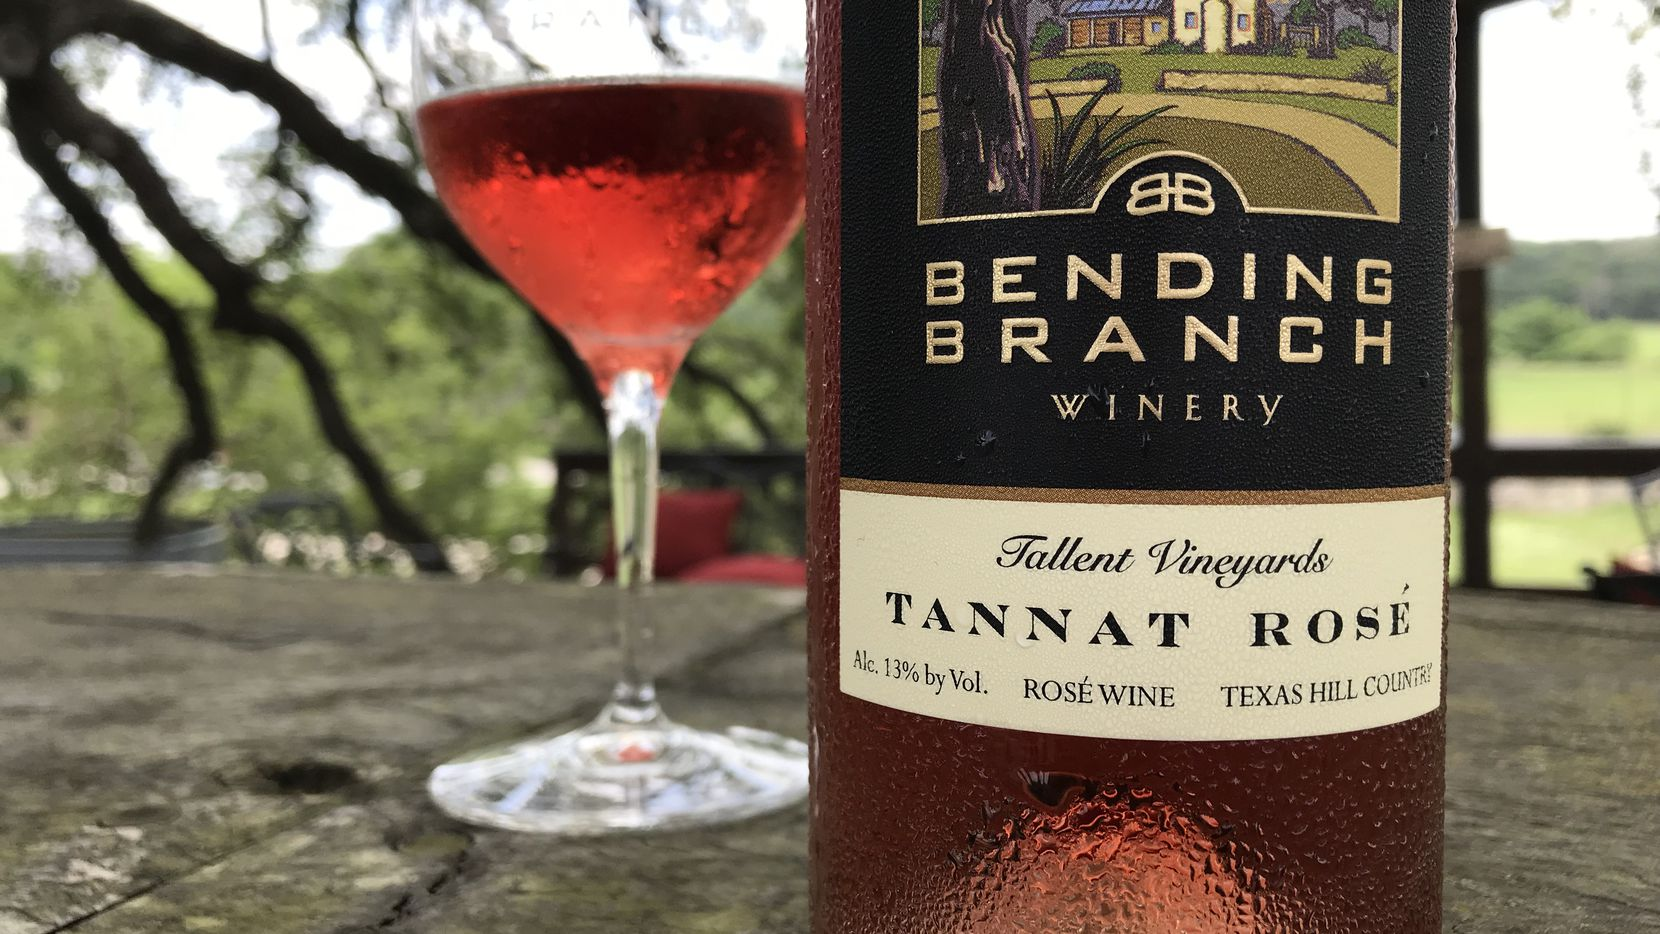 Bending Branch Winery and Tallent Vineyards share the first Texas Sustainable Winegrowing Competition award.